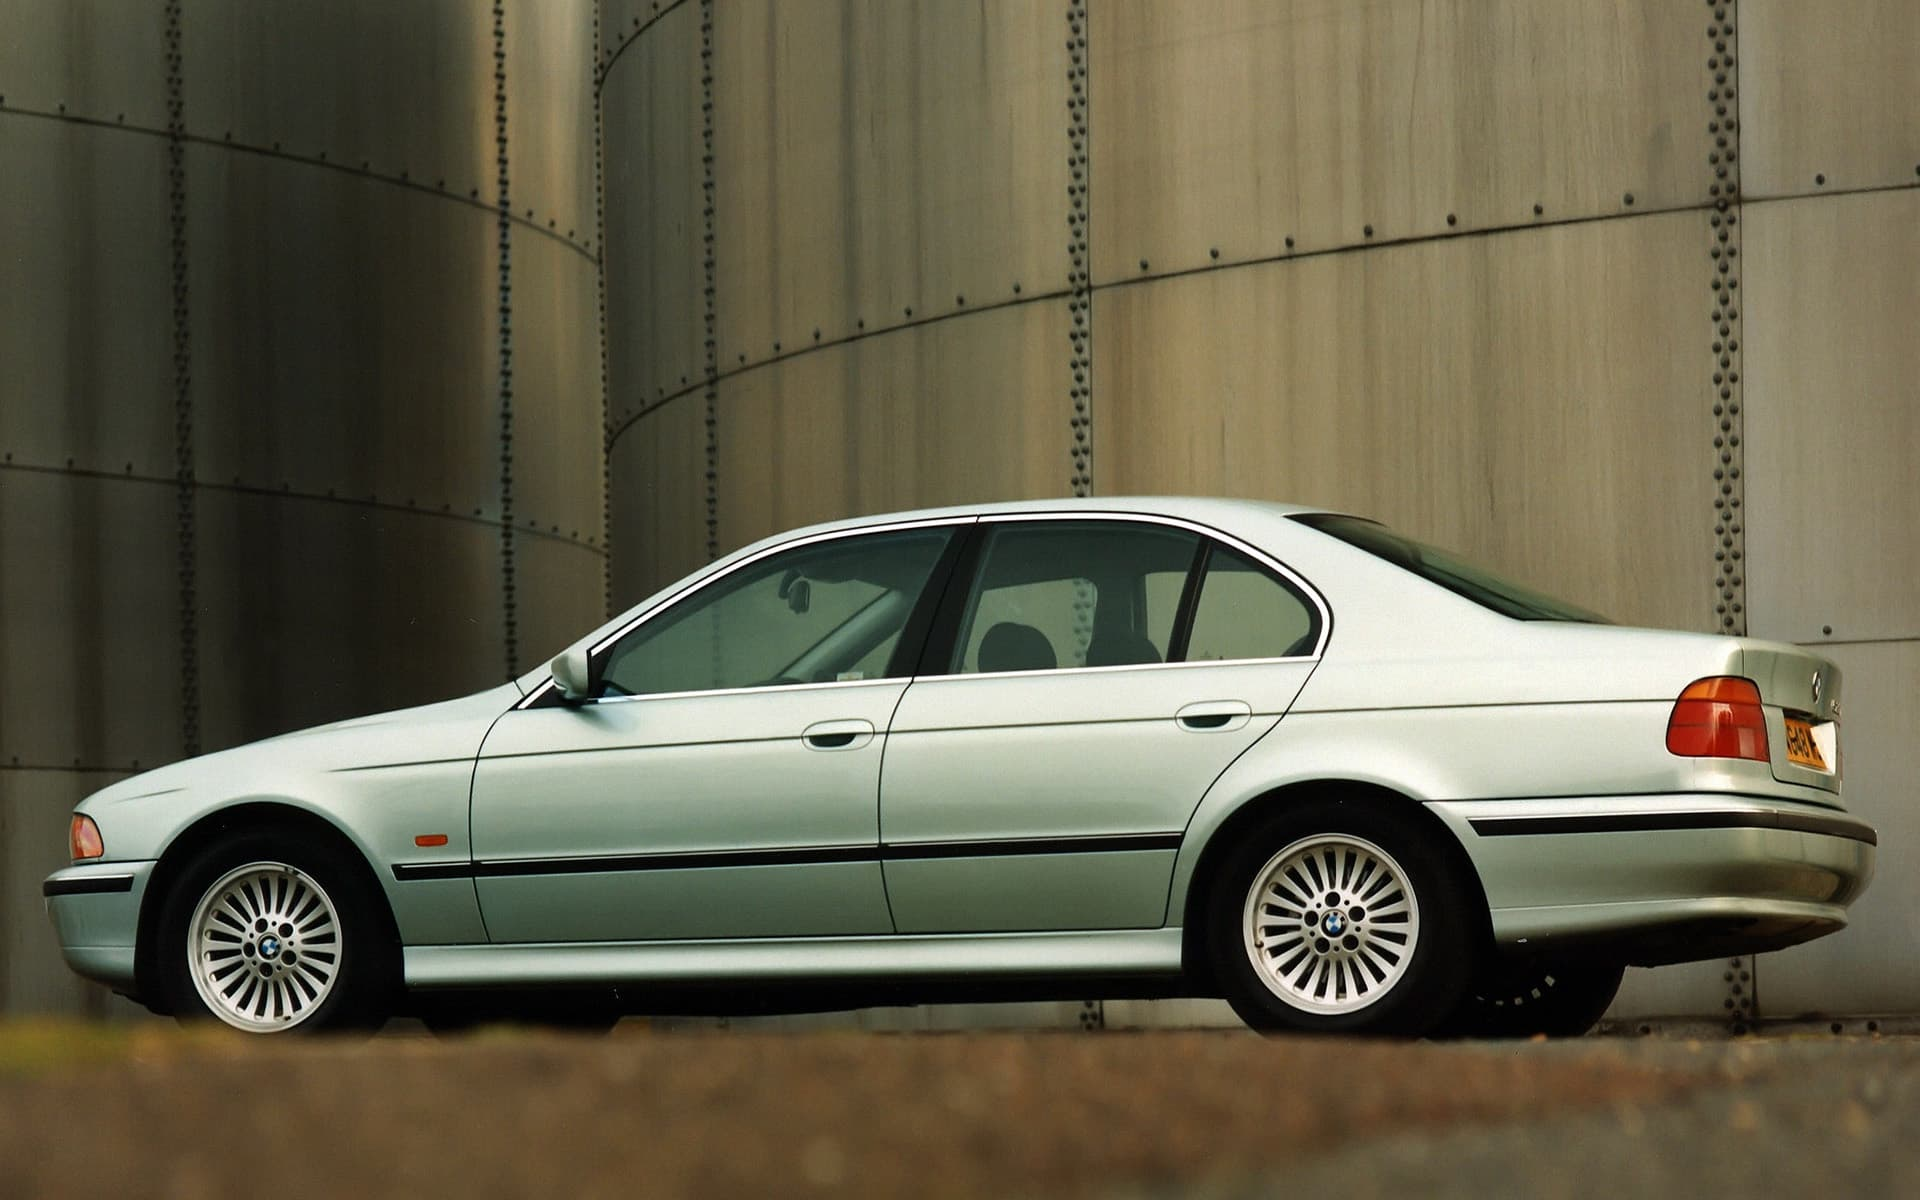 Bmw E39 540i 1996 Wallpapers High Resolution